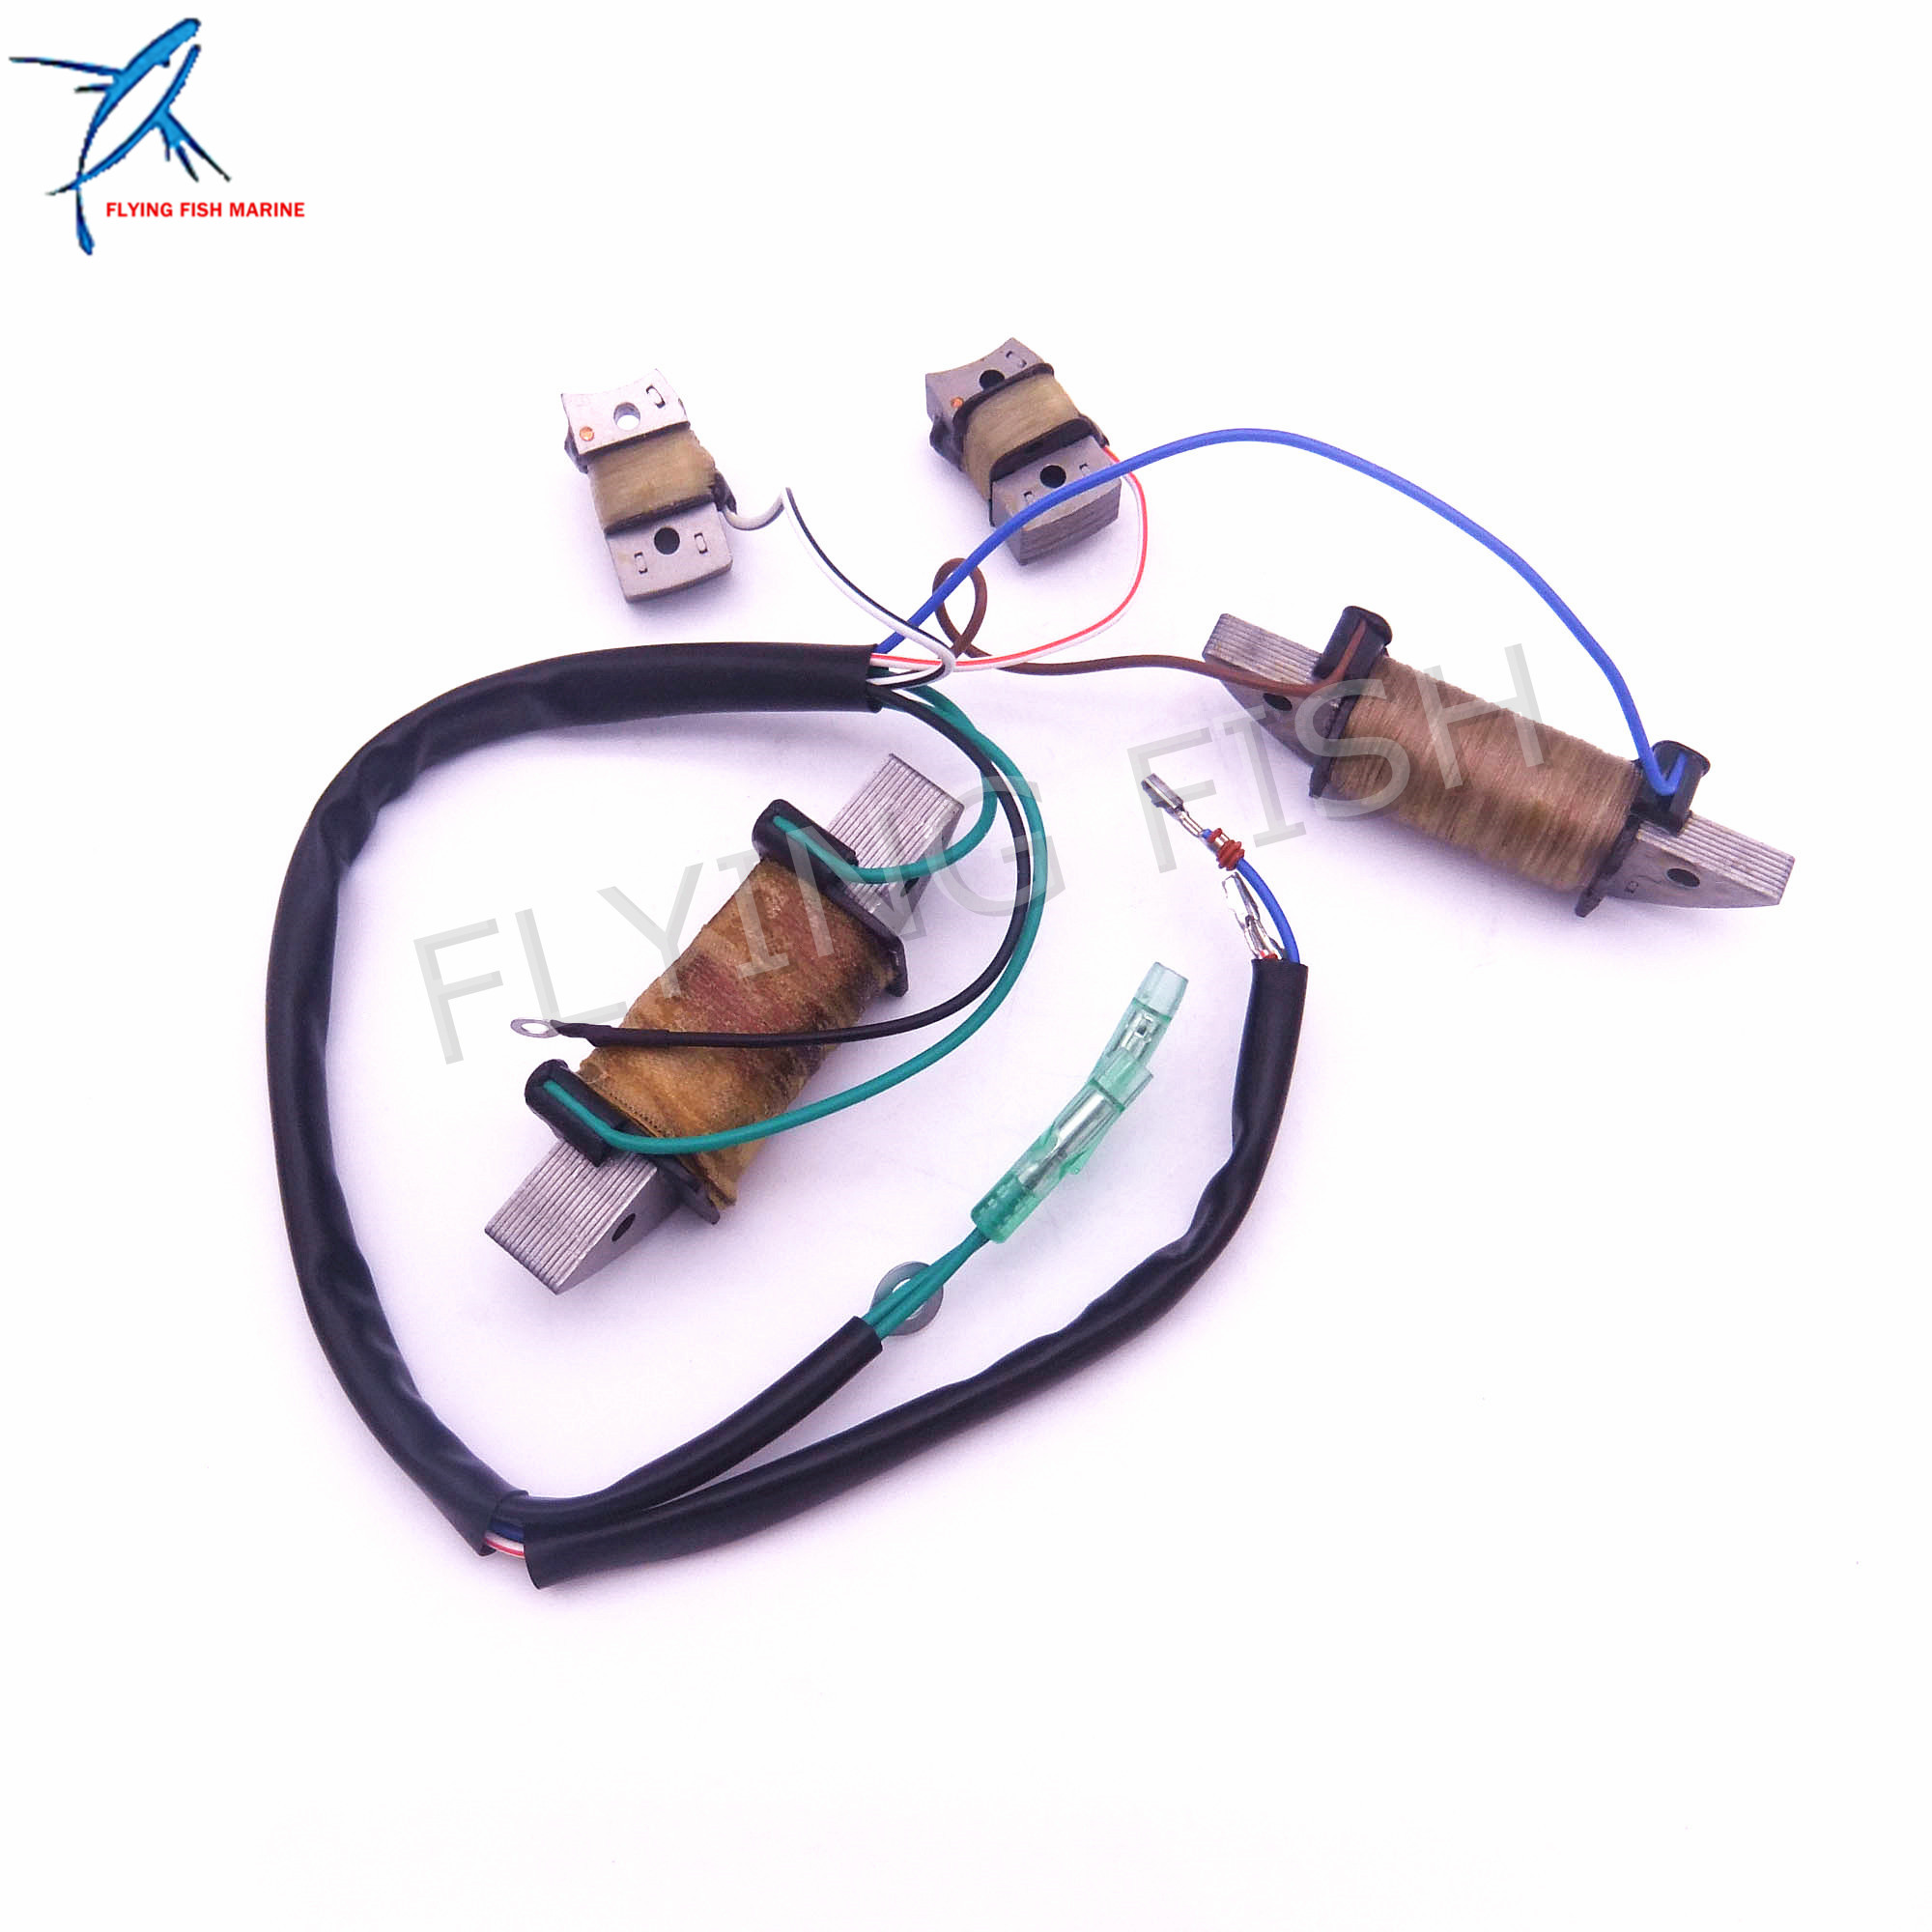 Outboard Engine T36-04041000 Power Supply Coil Assy for Parsun 2-Stroke T36 T40J Boat Motor Free Shipping